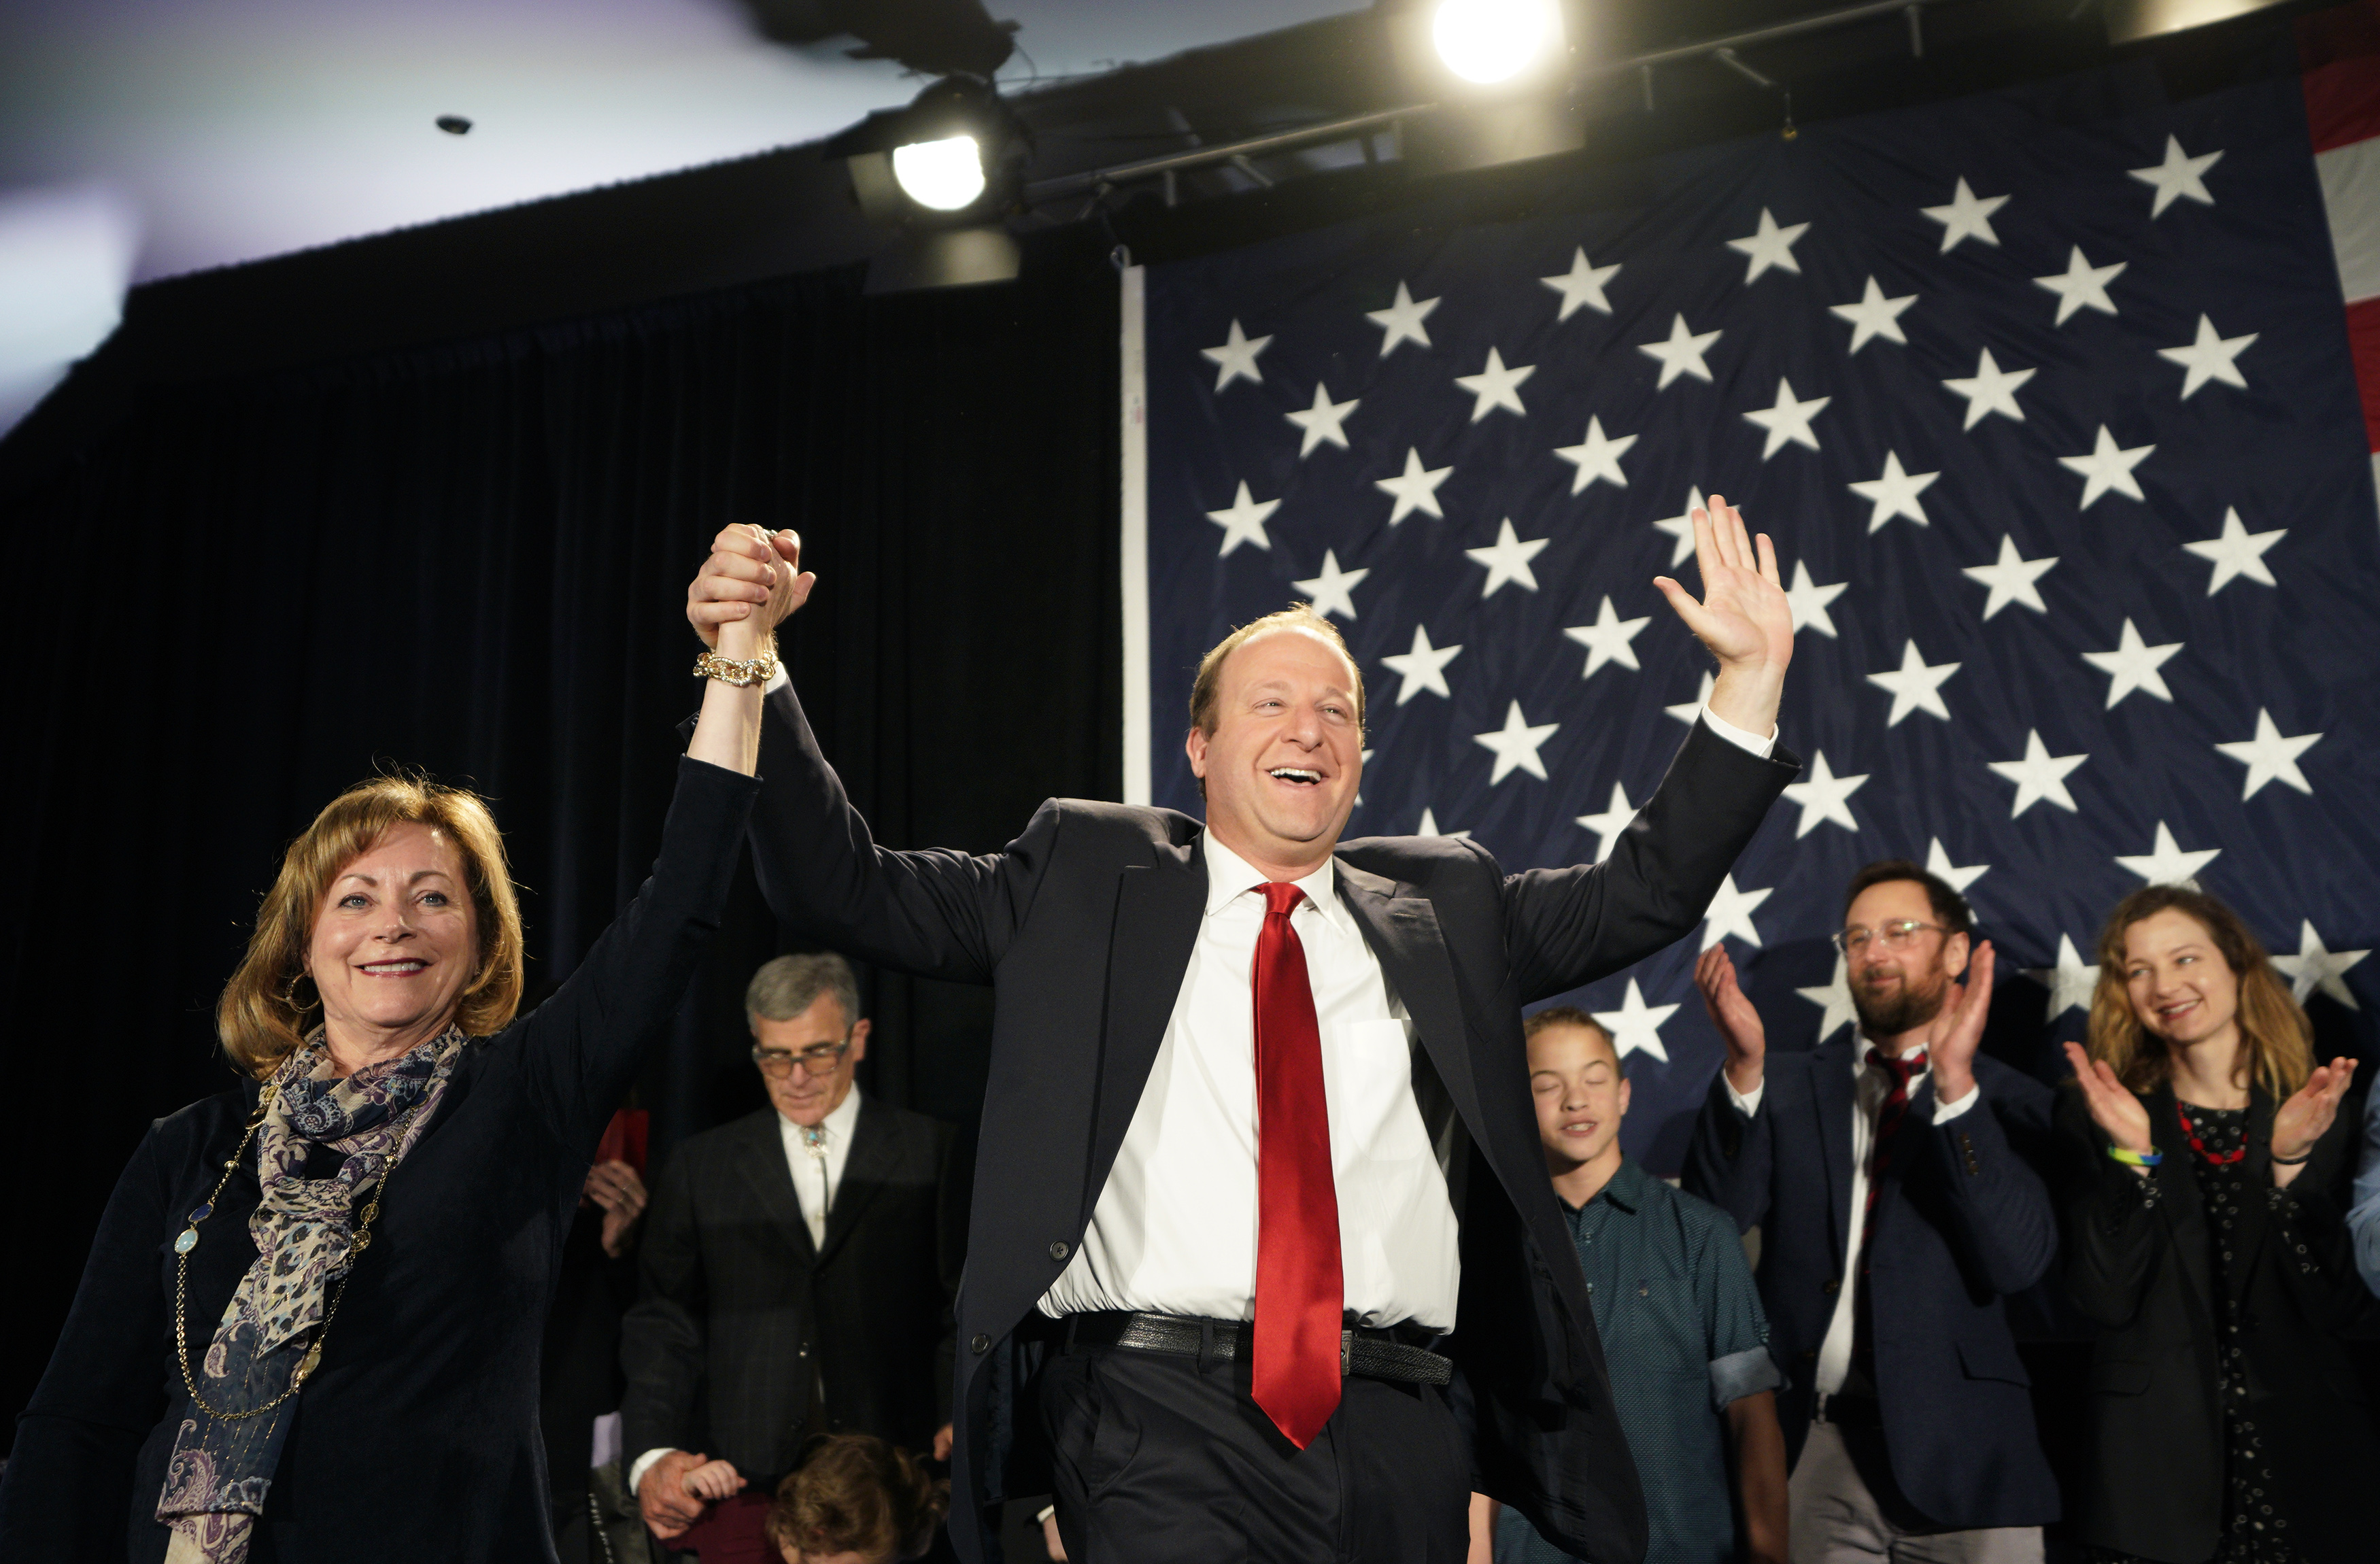 Democratic Colorado Governor-elect Jared Polis arrives onstage with running mate Dianne Primavera on November 6, 2018 in Denver, Colorado. (Rick T. Wilking/Getty Images)